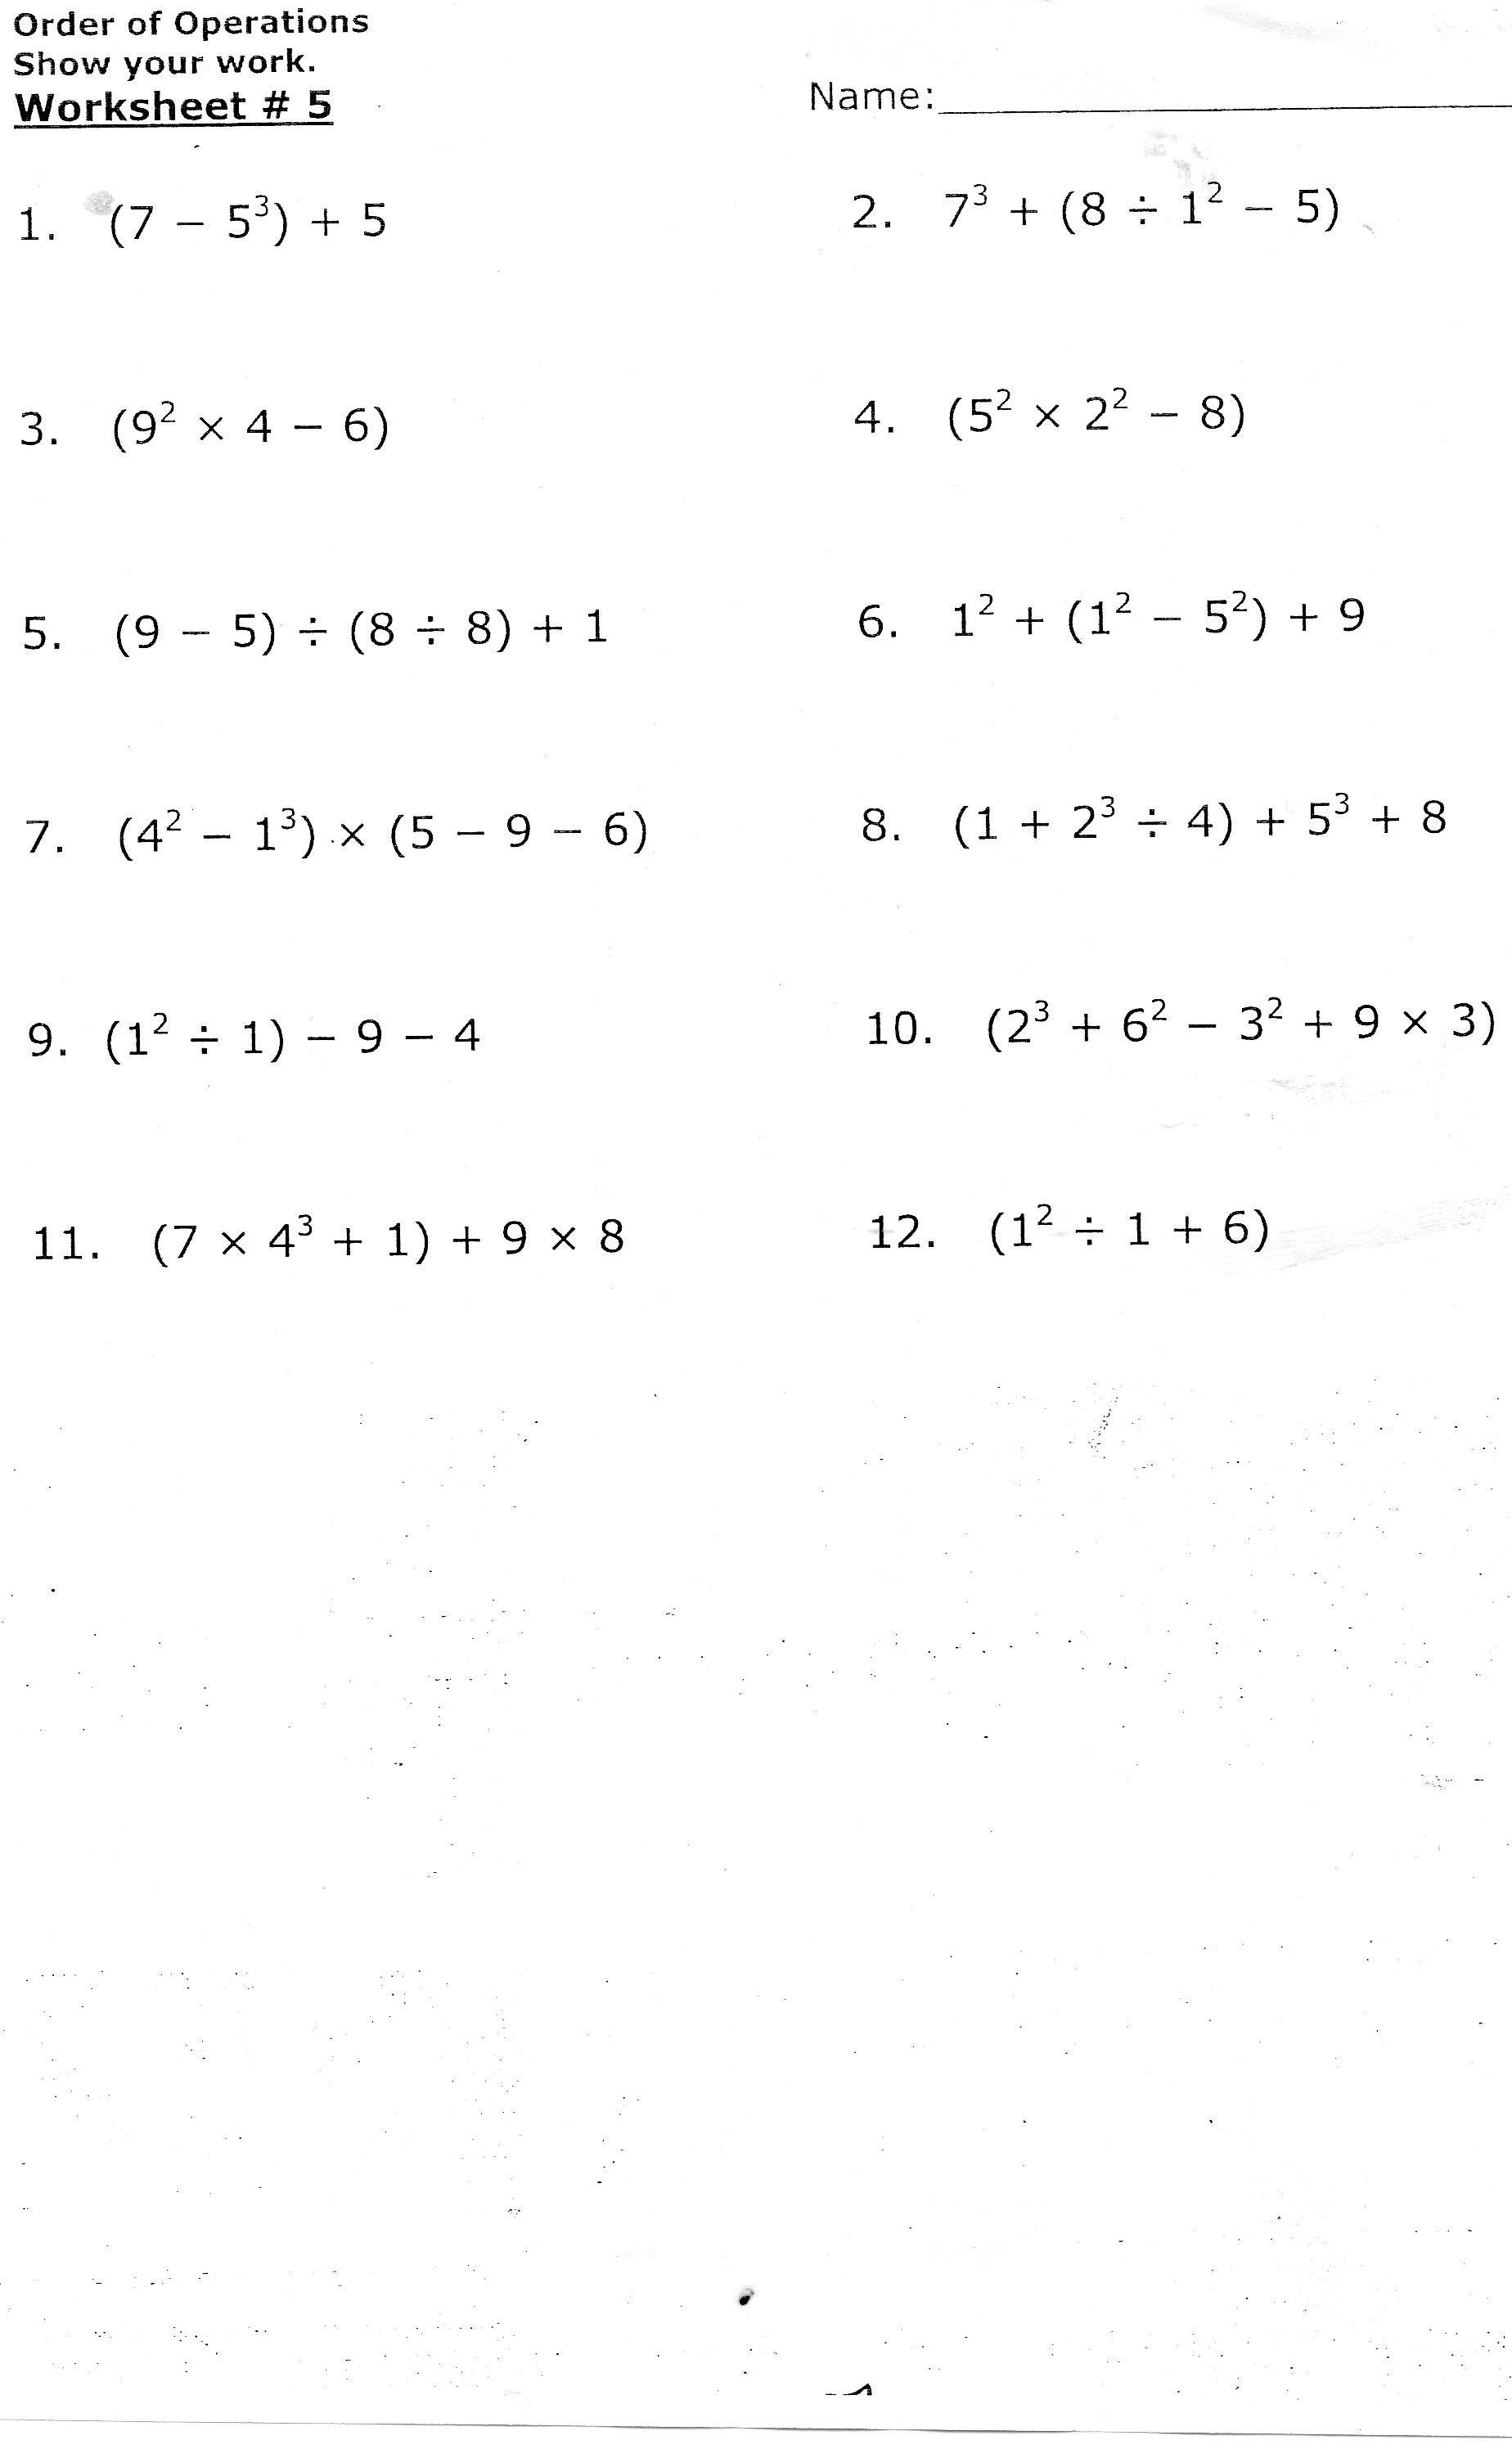 worksheet Algebra Worksheet printables algebra worksheets for 7th grade gozoneguide simplify algebraic expressions abitlikethis expressionworksheetsfor7thgrade turchi